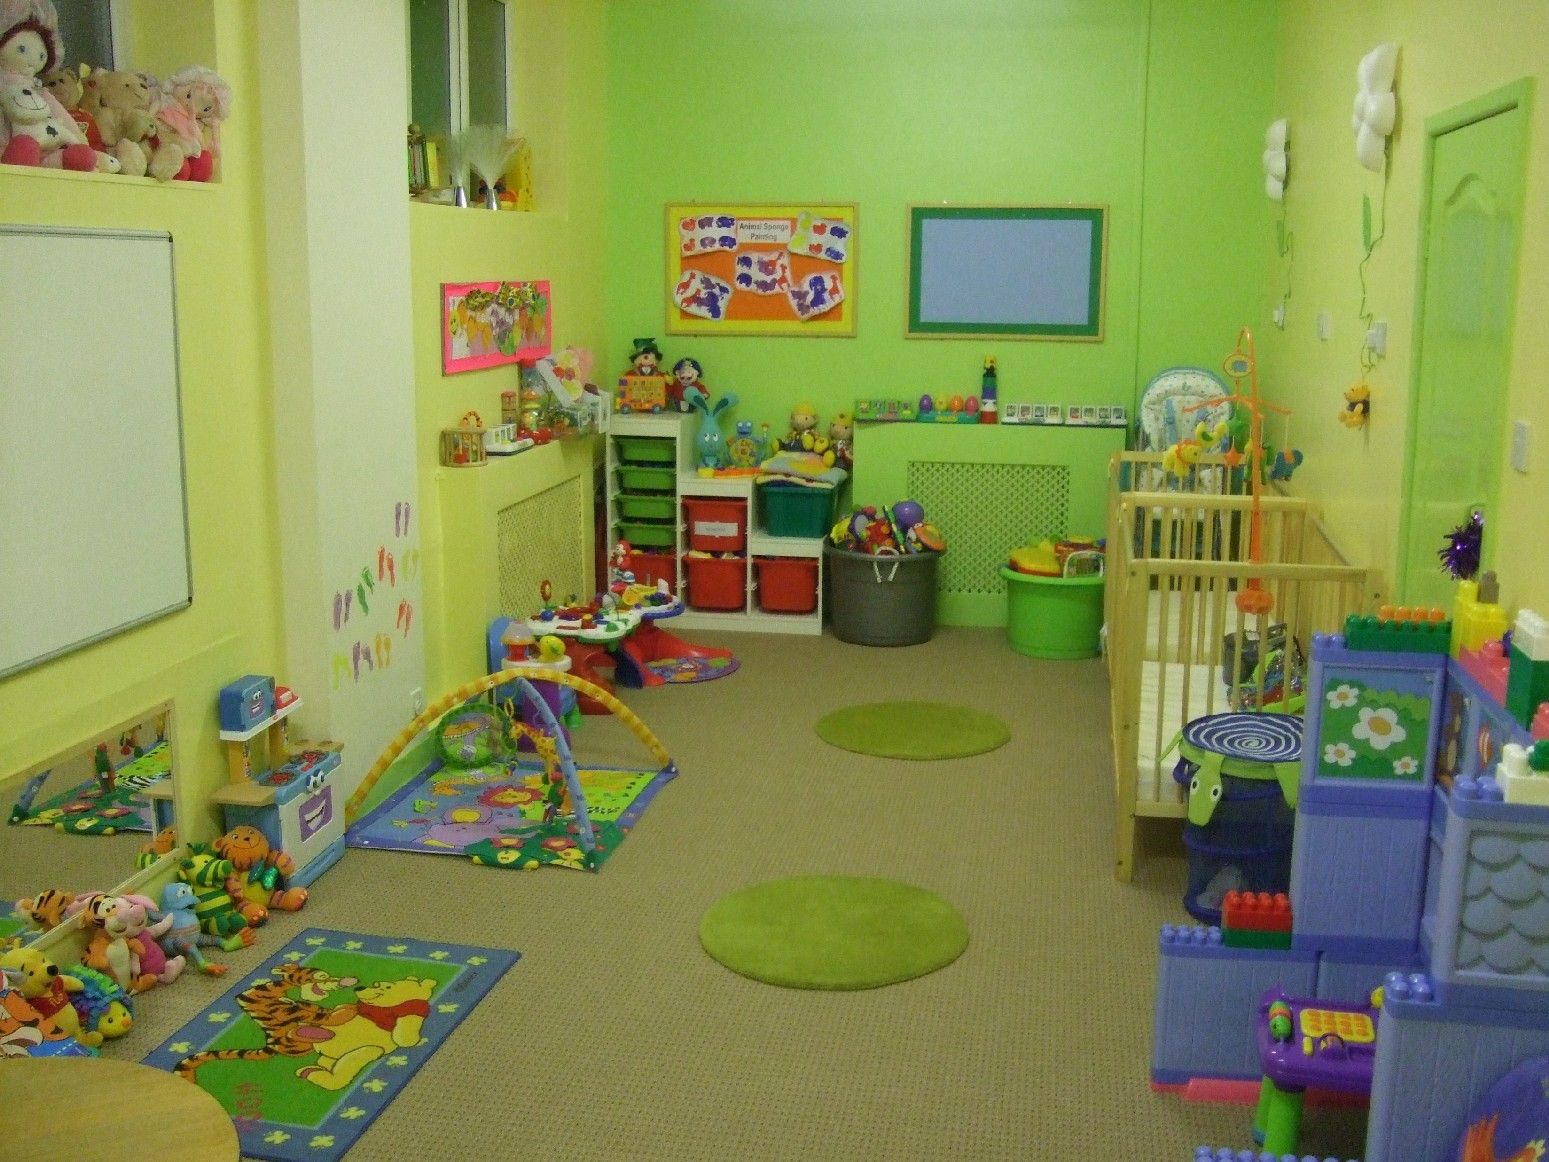 Daycare Layout Design For Infant Room | Welcome To Our Baby Room This Room  Can Accommodate